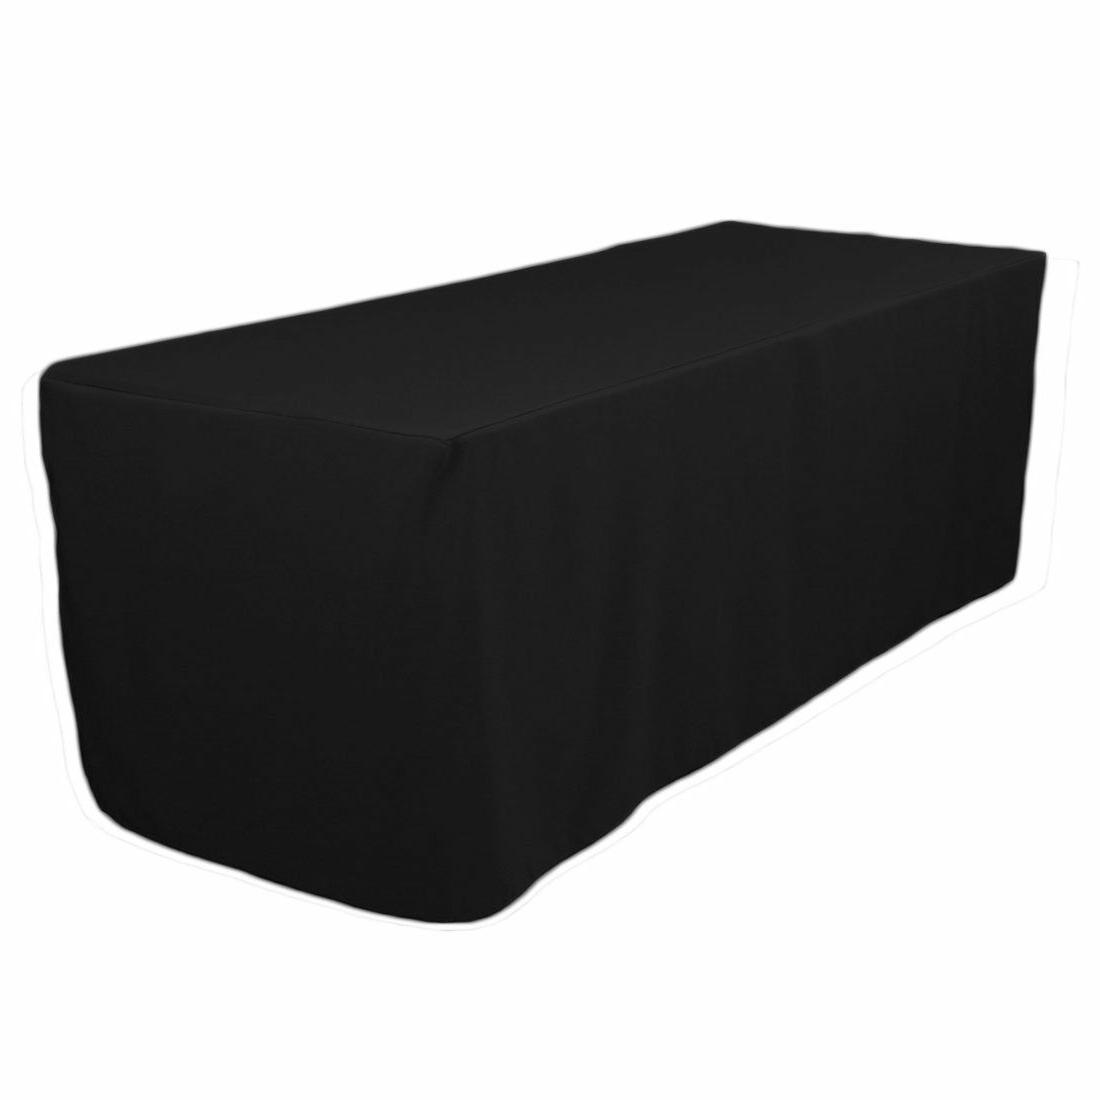 NEW! LinenTablecloth 6 ft Fitted Polyester Tablecloth Black